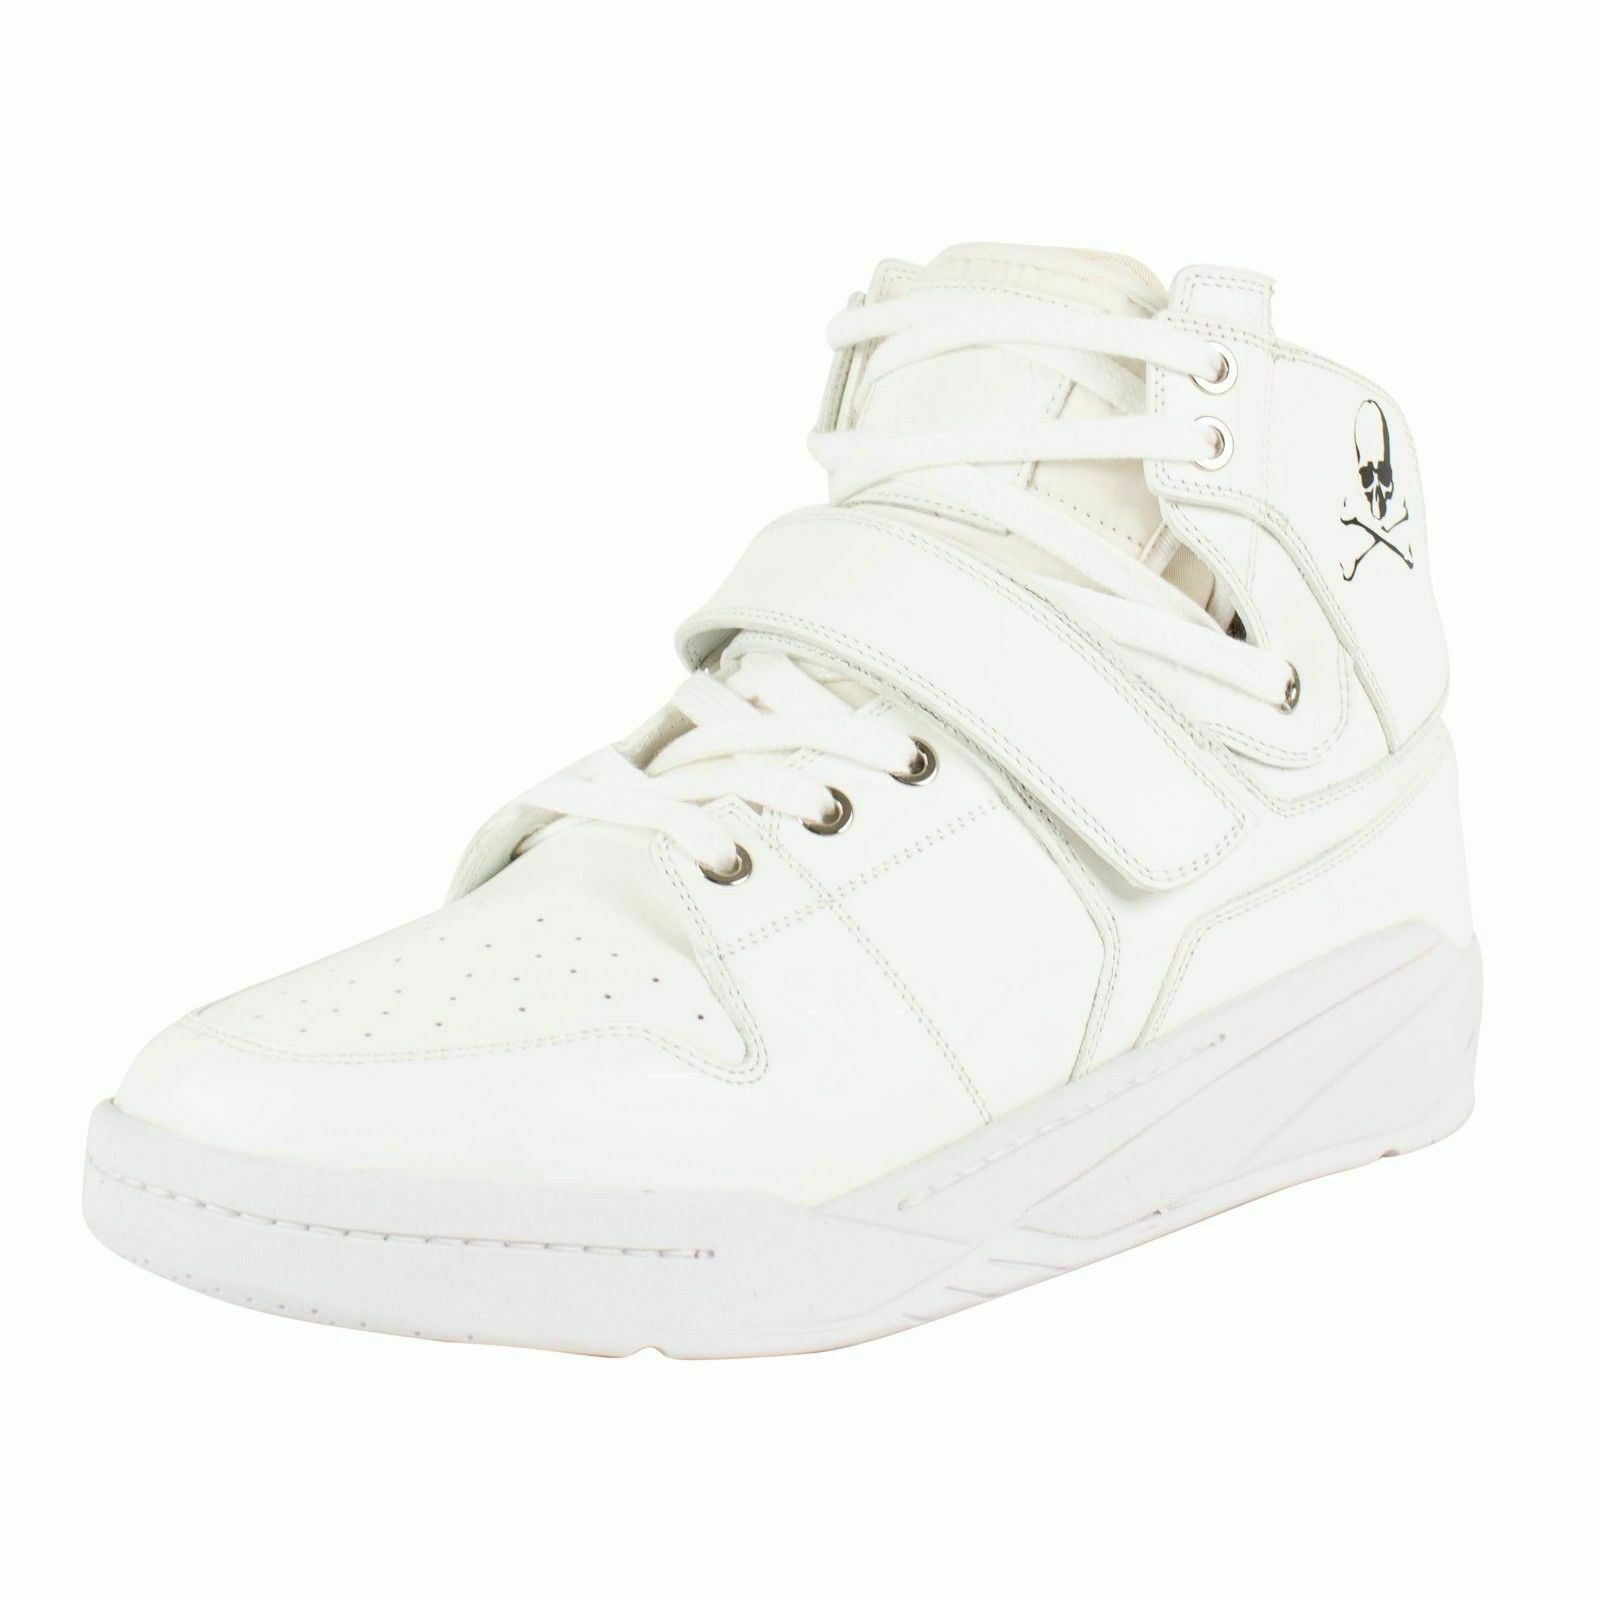 f4d2fd7f96ae NIB MASTERMIND SEARCHNDESIGN  MMJ  White Basket Sneakers shoes Size 10 43